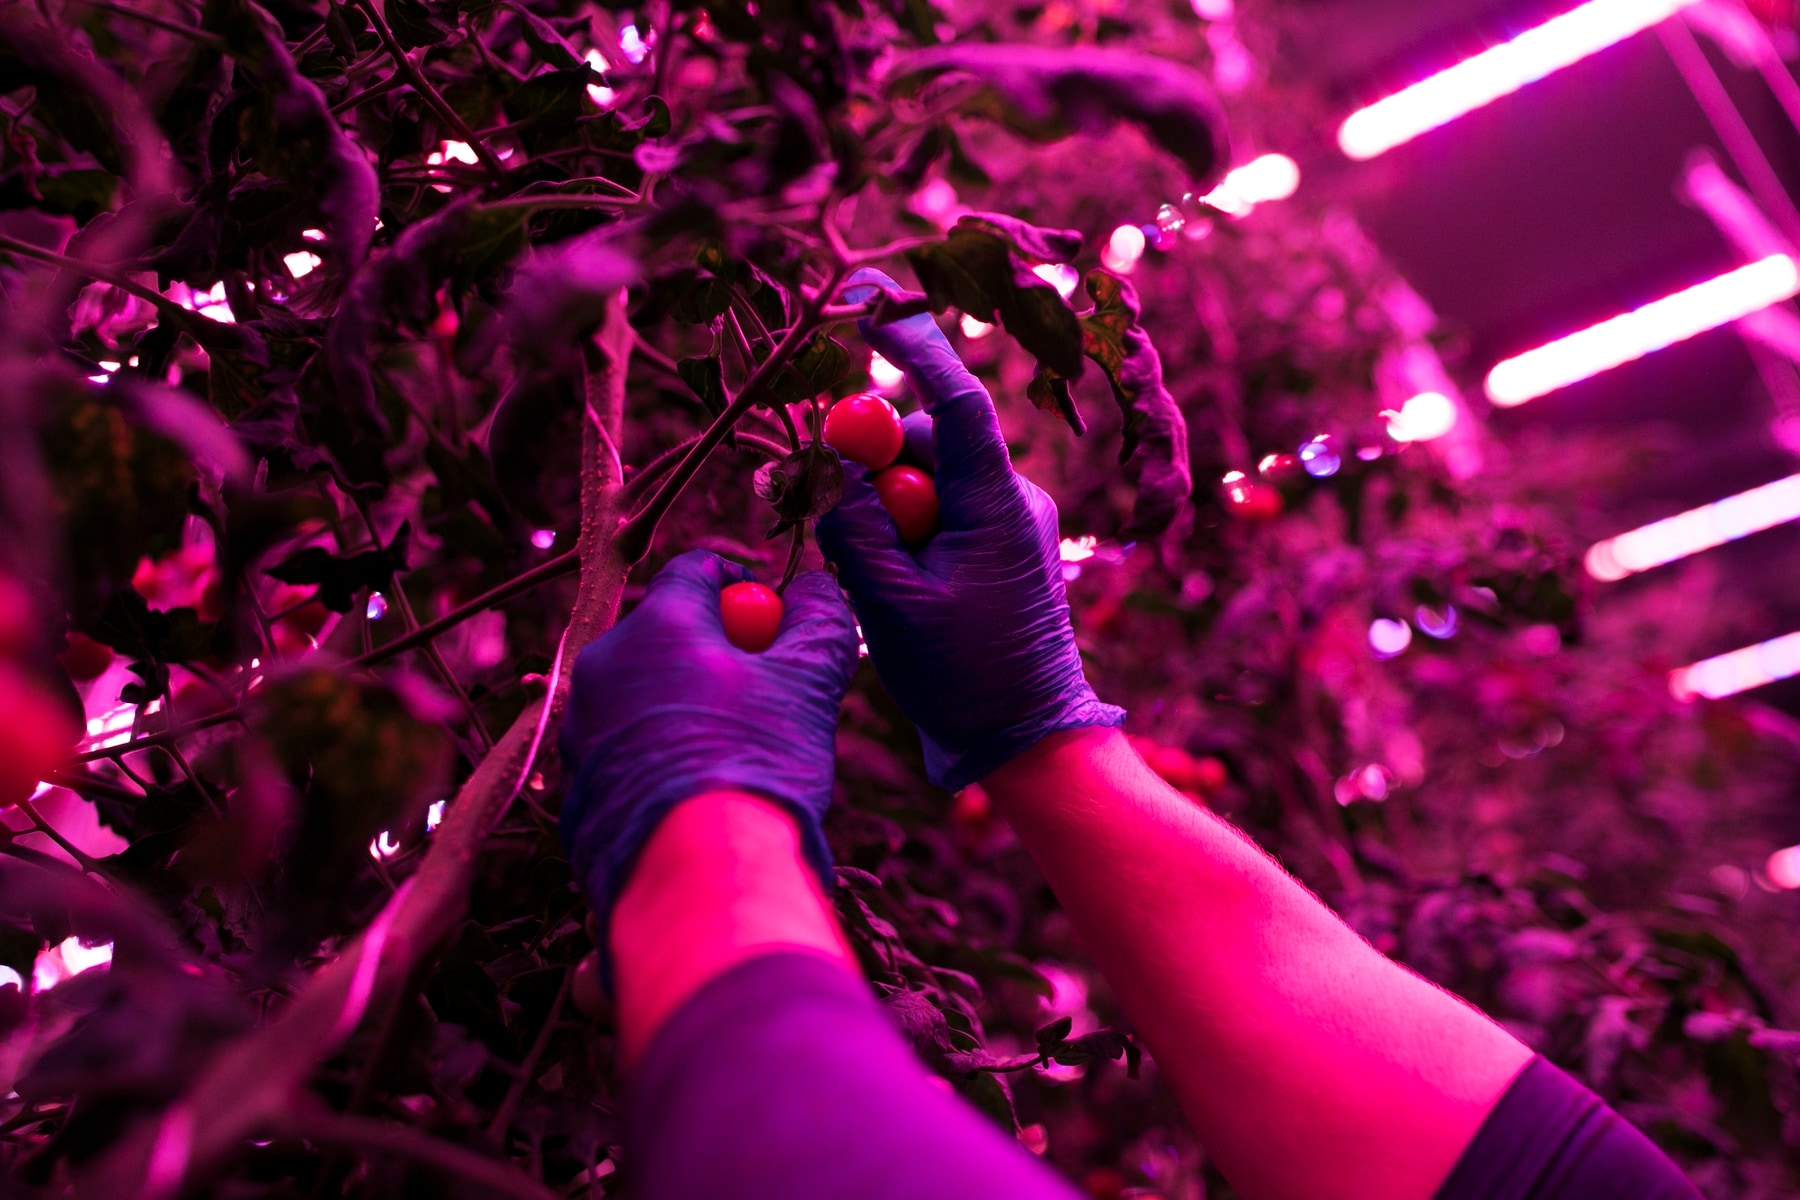 Grower David Litvin picks tomatoes at 80 Acres Farms in Cincinnati. The vines grow in a high-tech environment that includes LED lamps with customized light recipes. The plant factory produces 200,000 pounds of leafy greens, vine crops, herbs and microgreens annually in a 12,000-square-foot warehouse. (Maddie McGarvey/For The Washington Post)